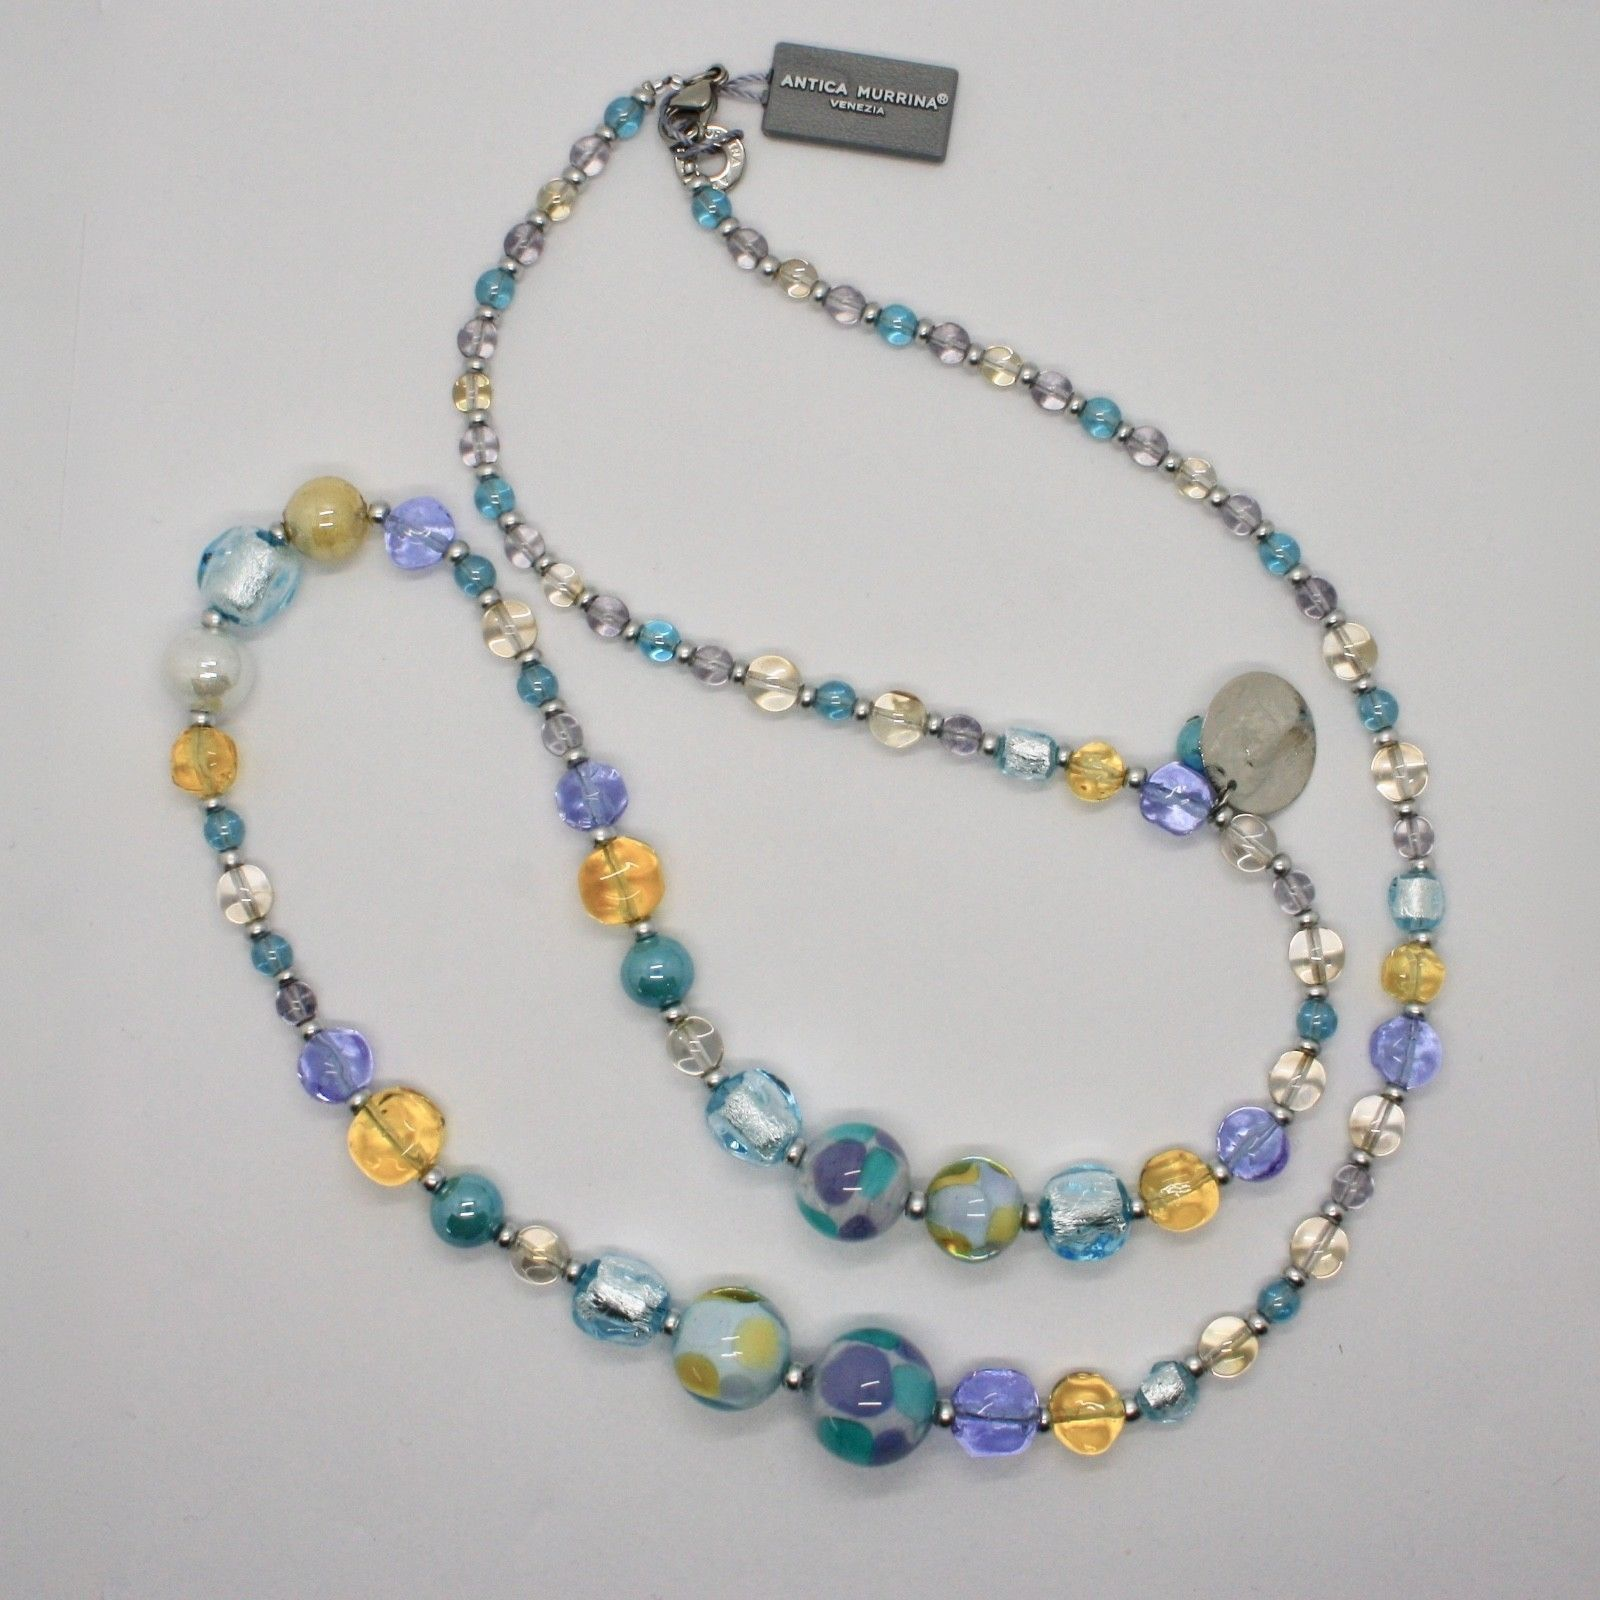 ANTICA MURRINA VENEZIA NECKLACE WITH MURANO GLASS BEIGE BLUE YELLOW COA82A07